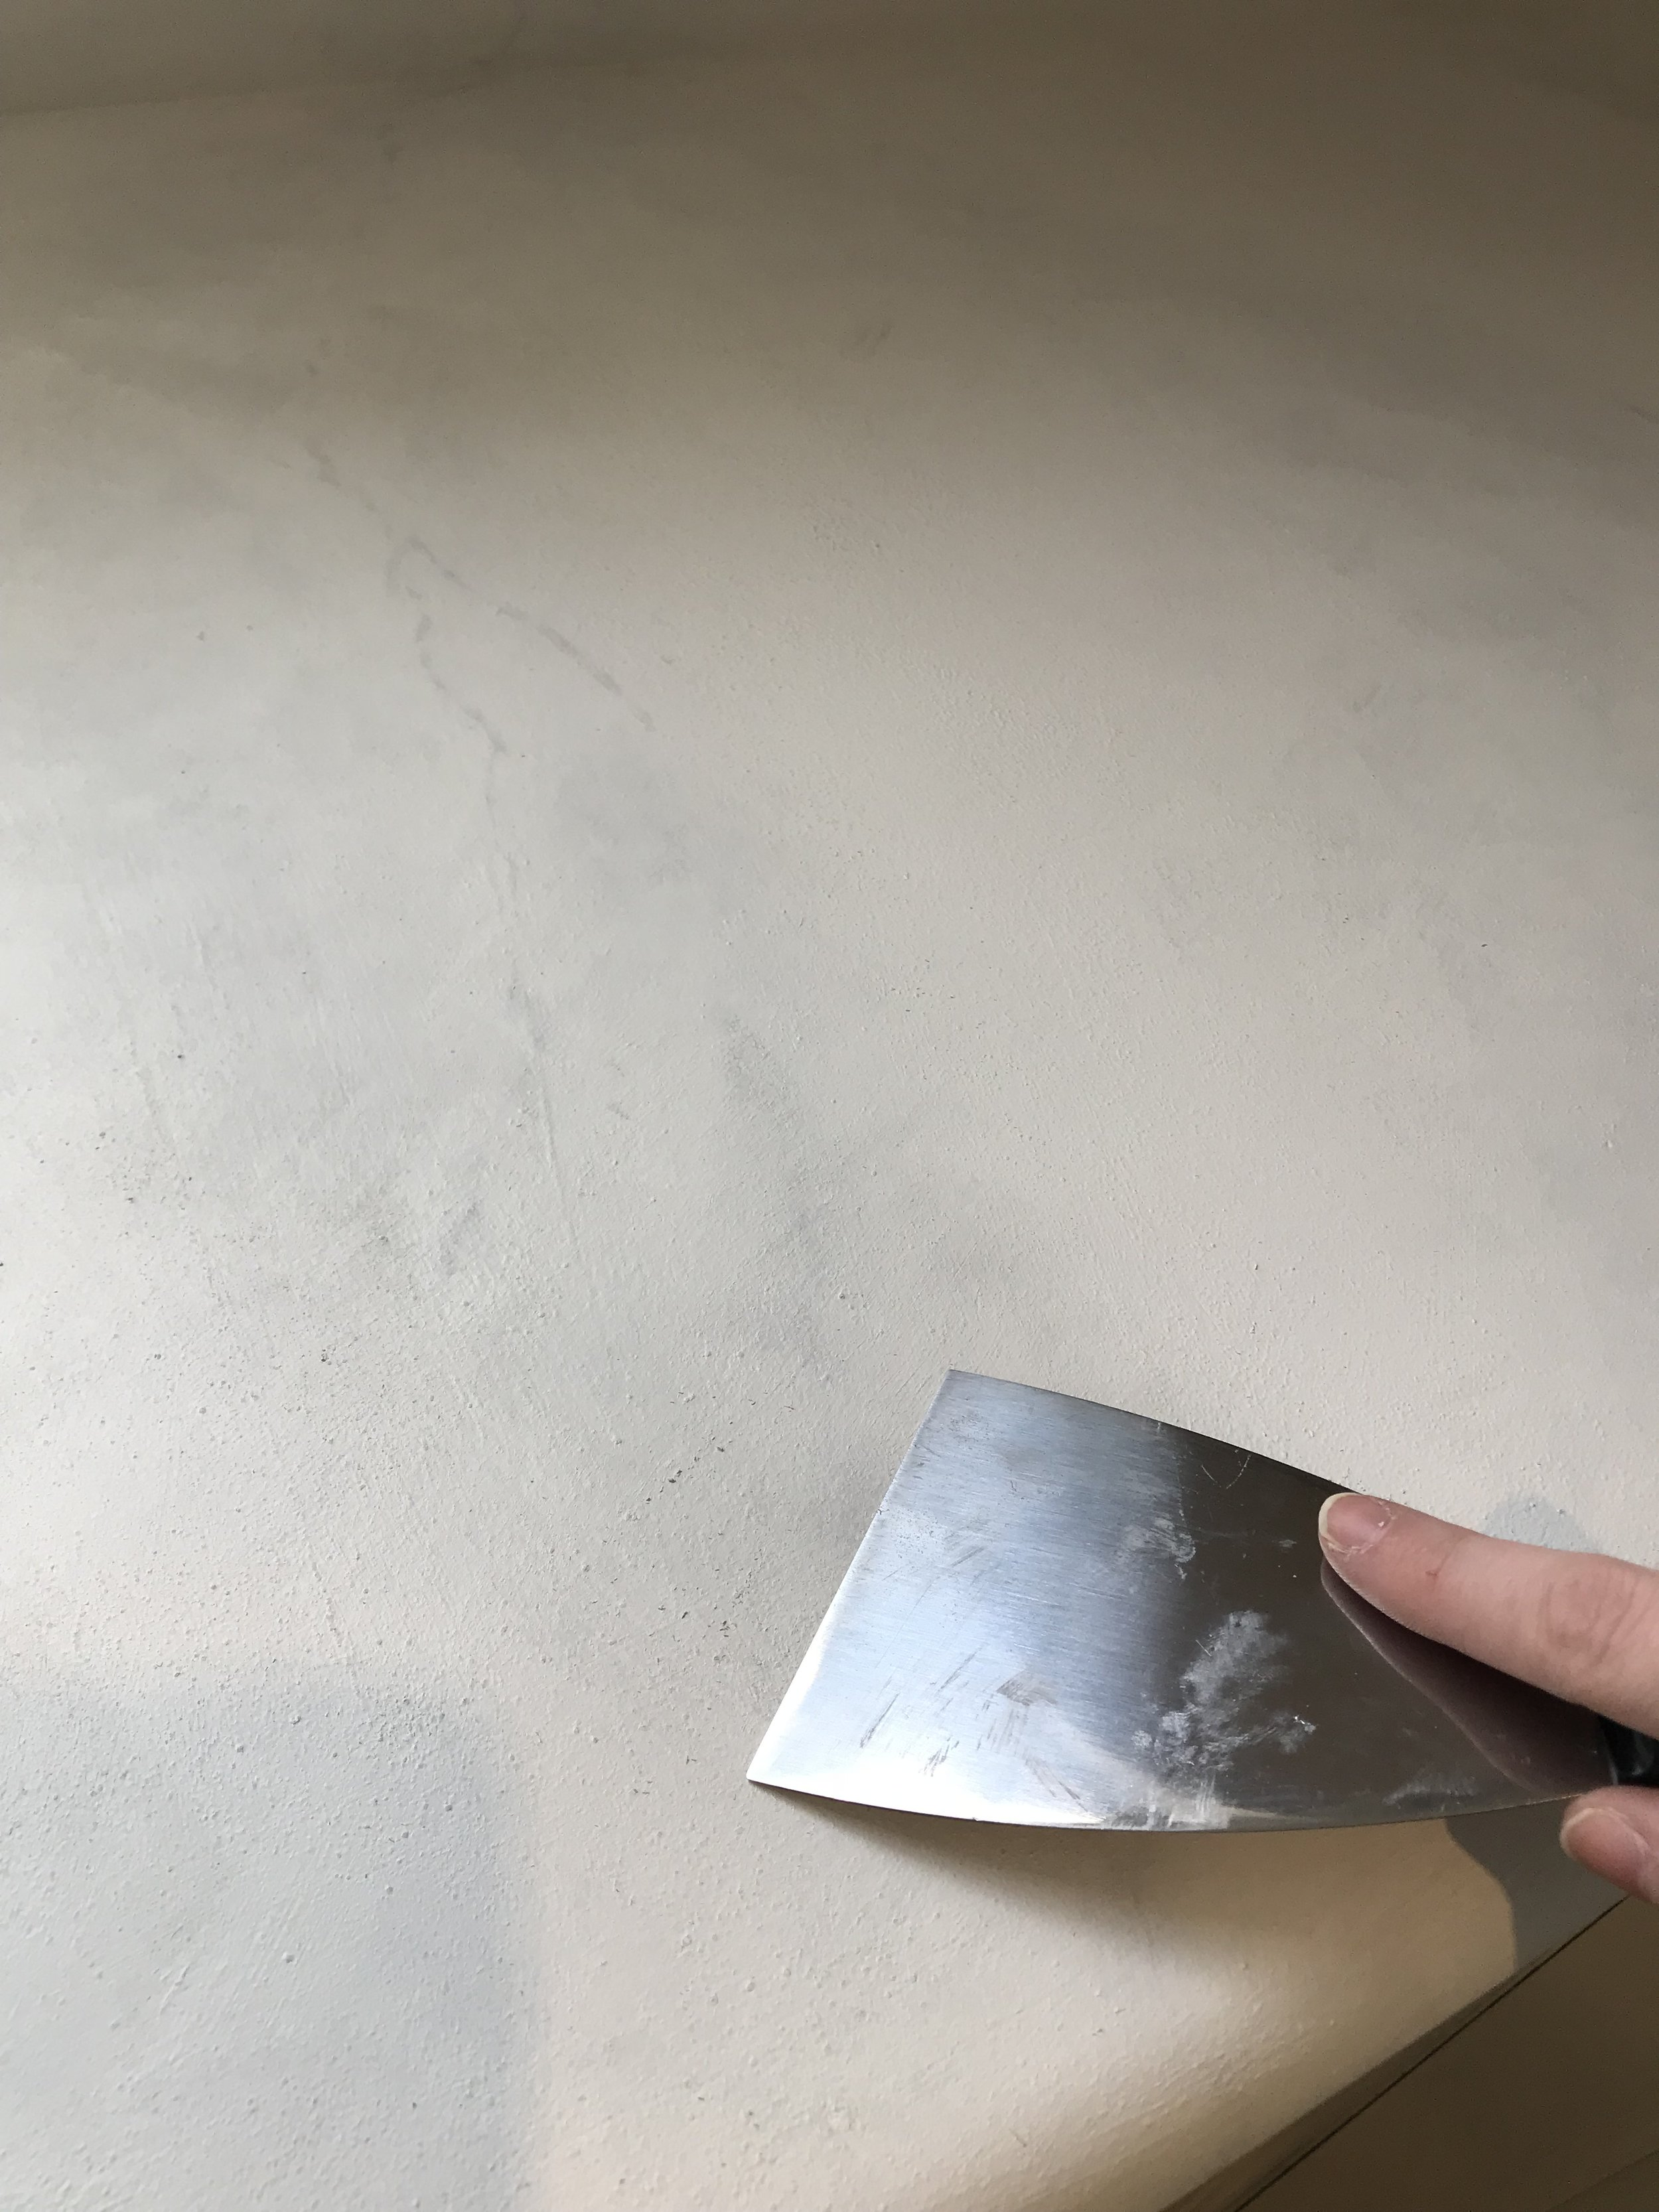 Scraping away any bumps and texture